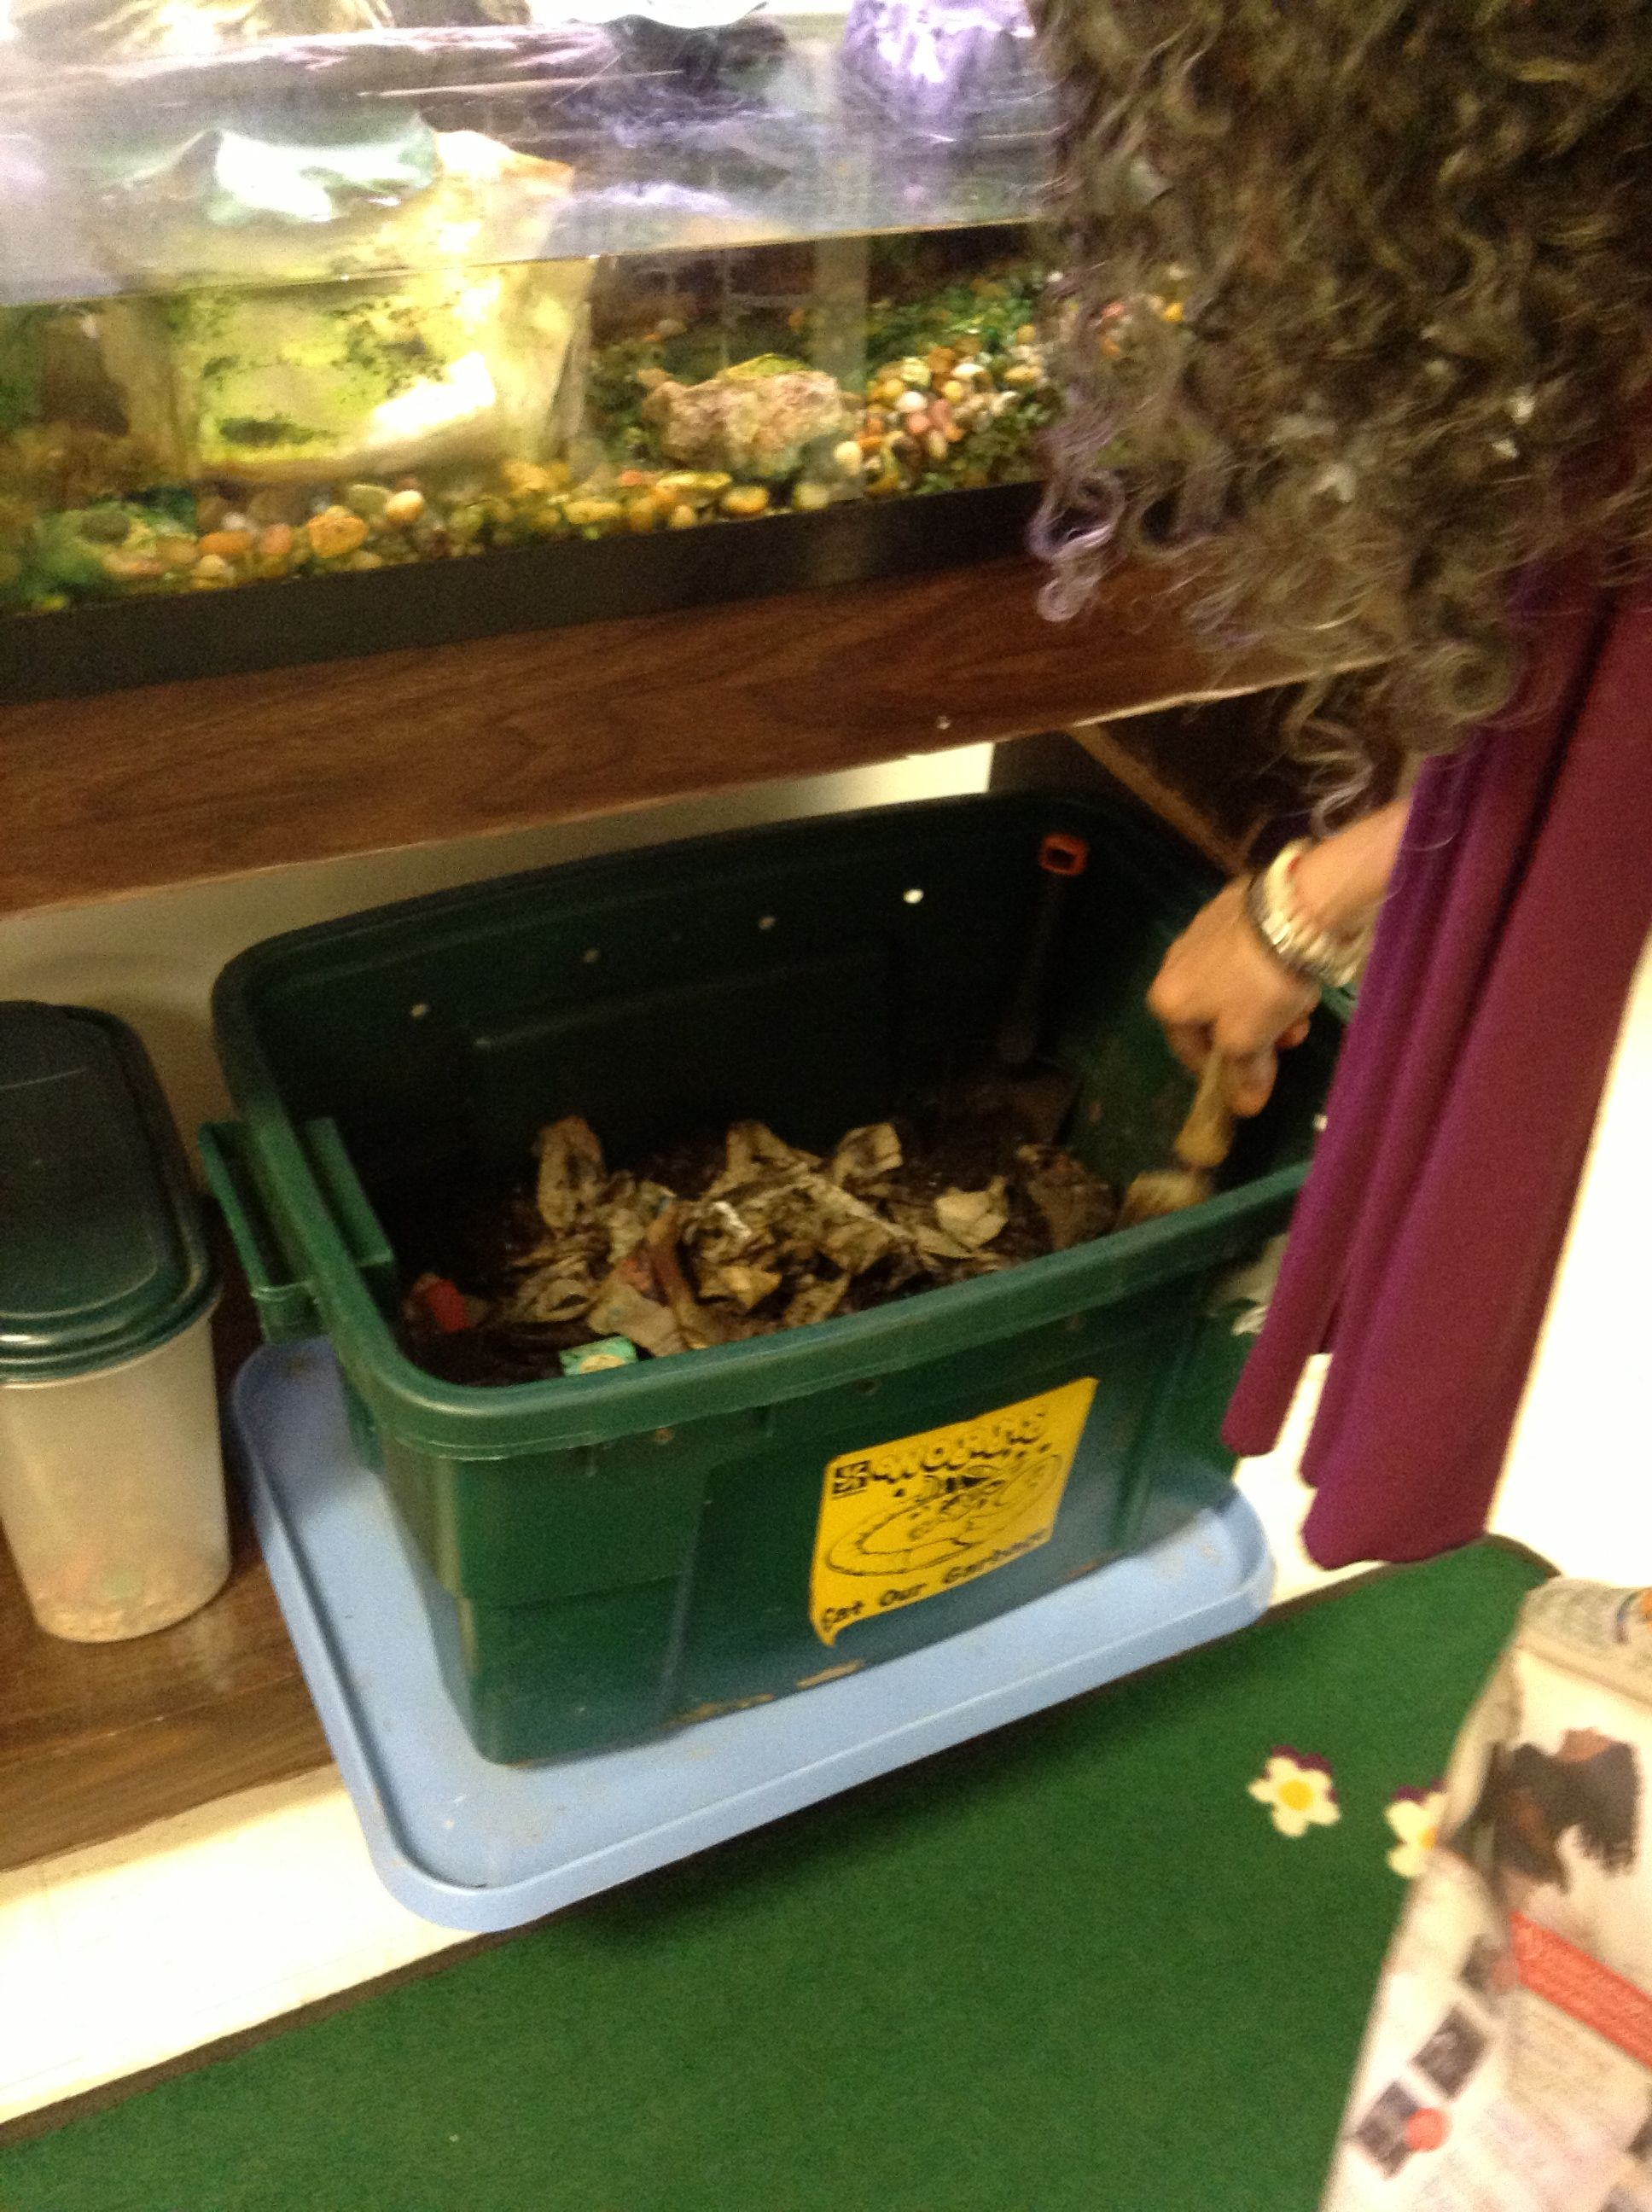 Making Their Own Mulch Composting Worms And Other Bugs